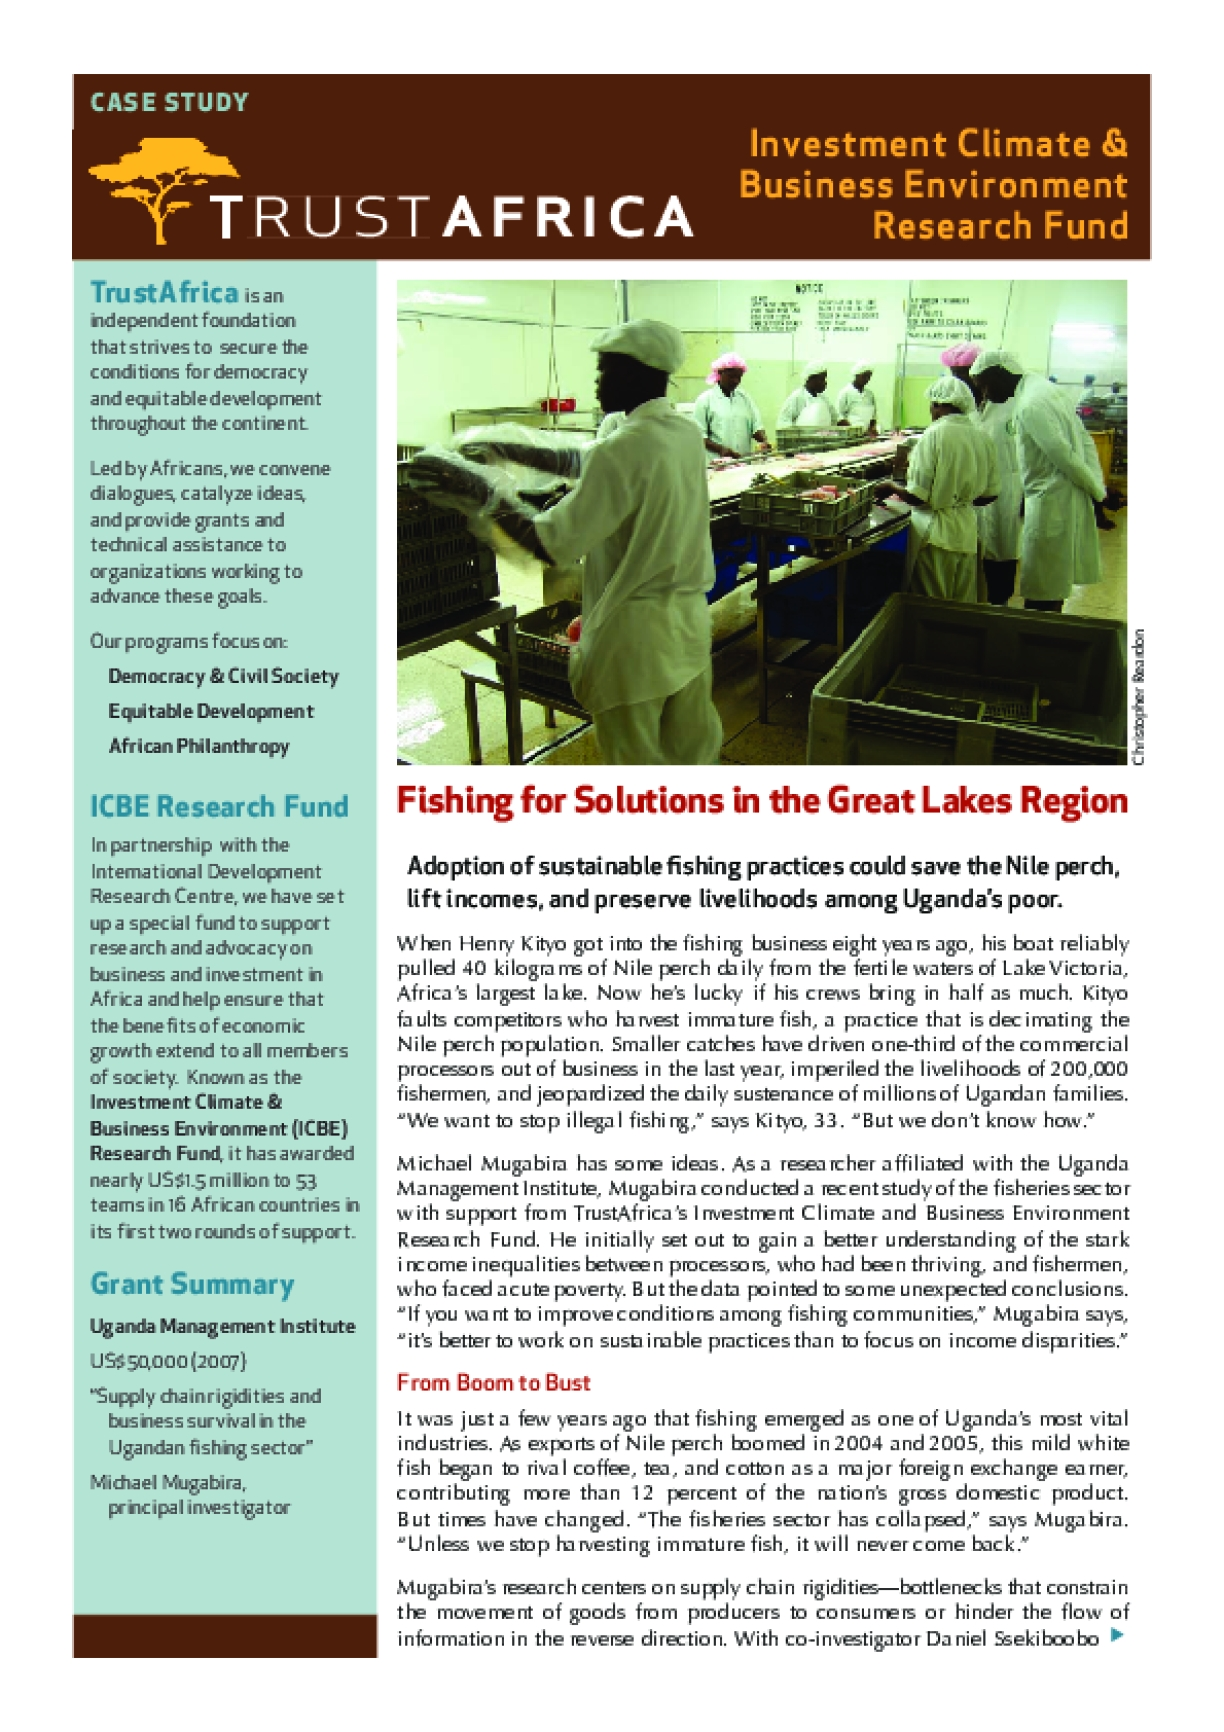 Fishing for Solutions in the Great Lakes Region